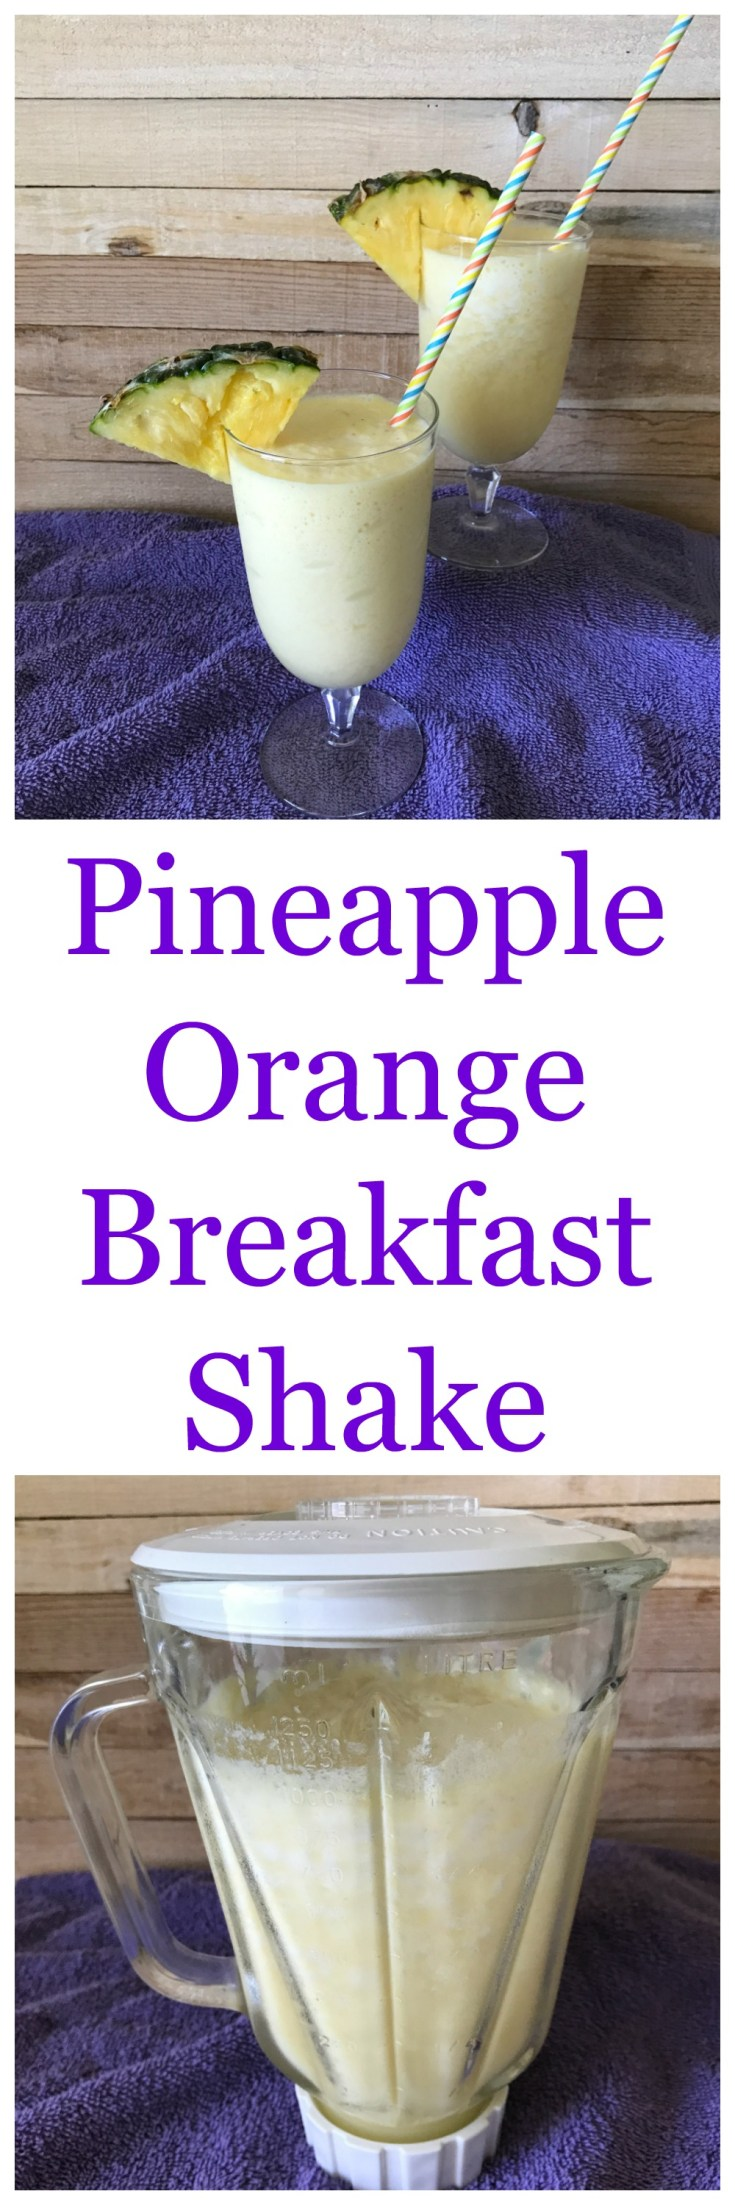 Pineapple Orange Breakfast Shake is a great way to start the day.